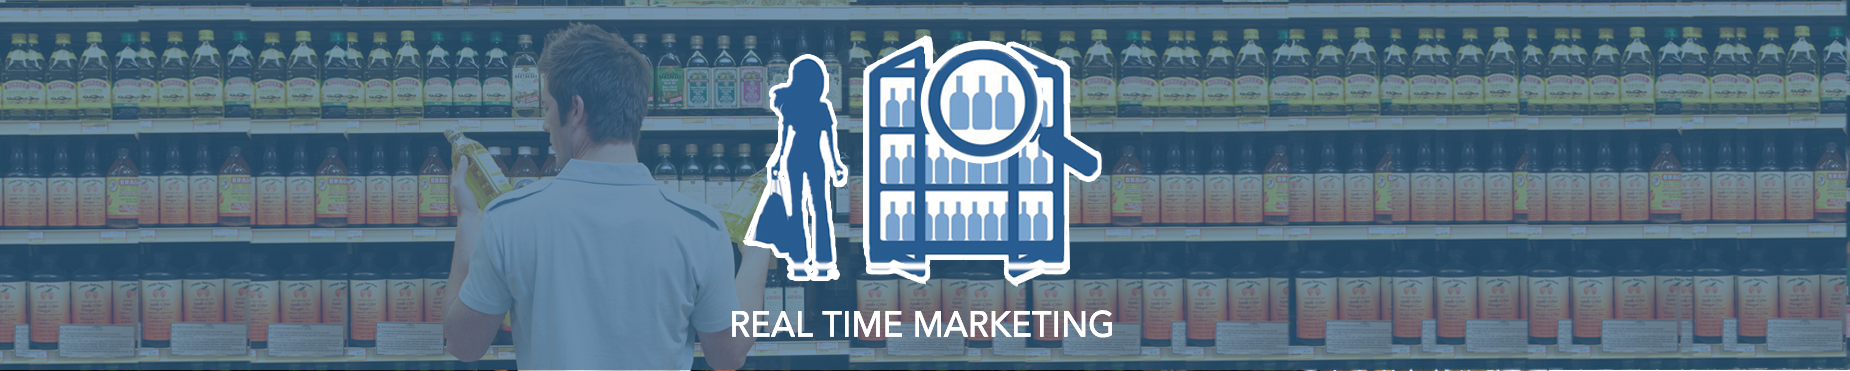 real_time_marketing